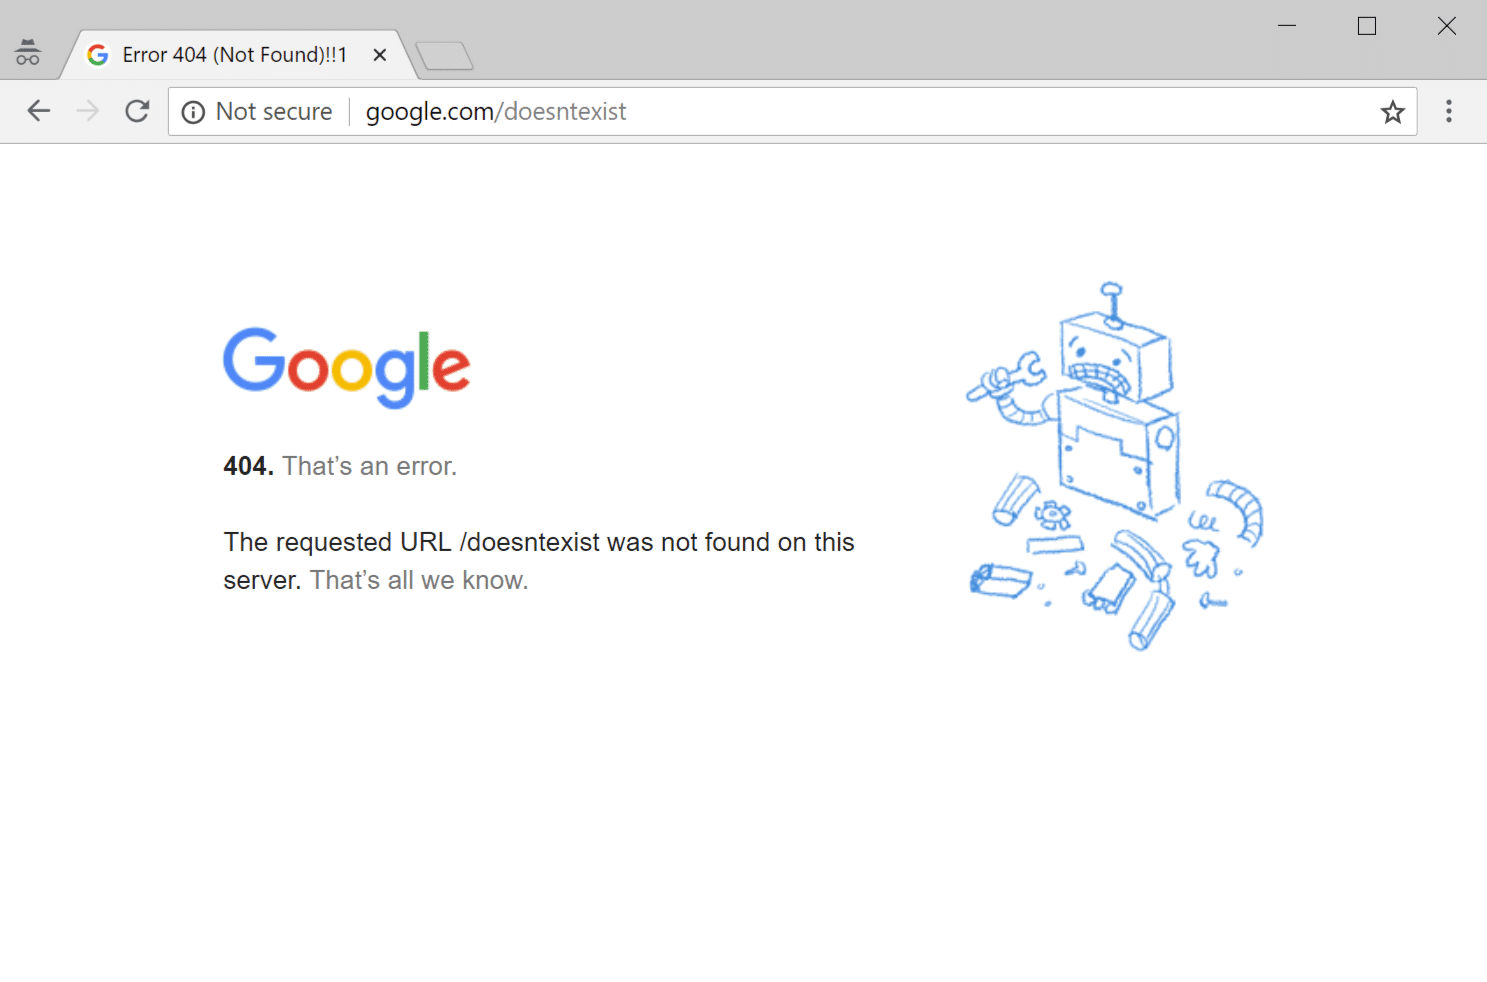 Página de erro do Google 404